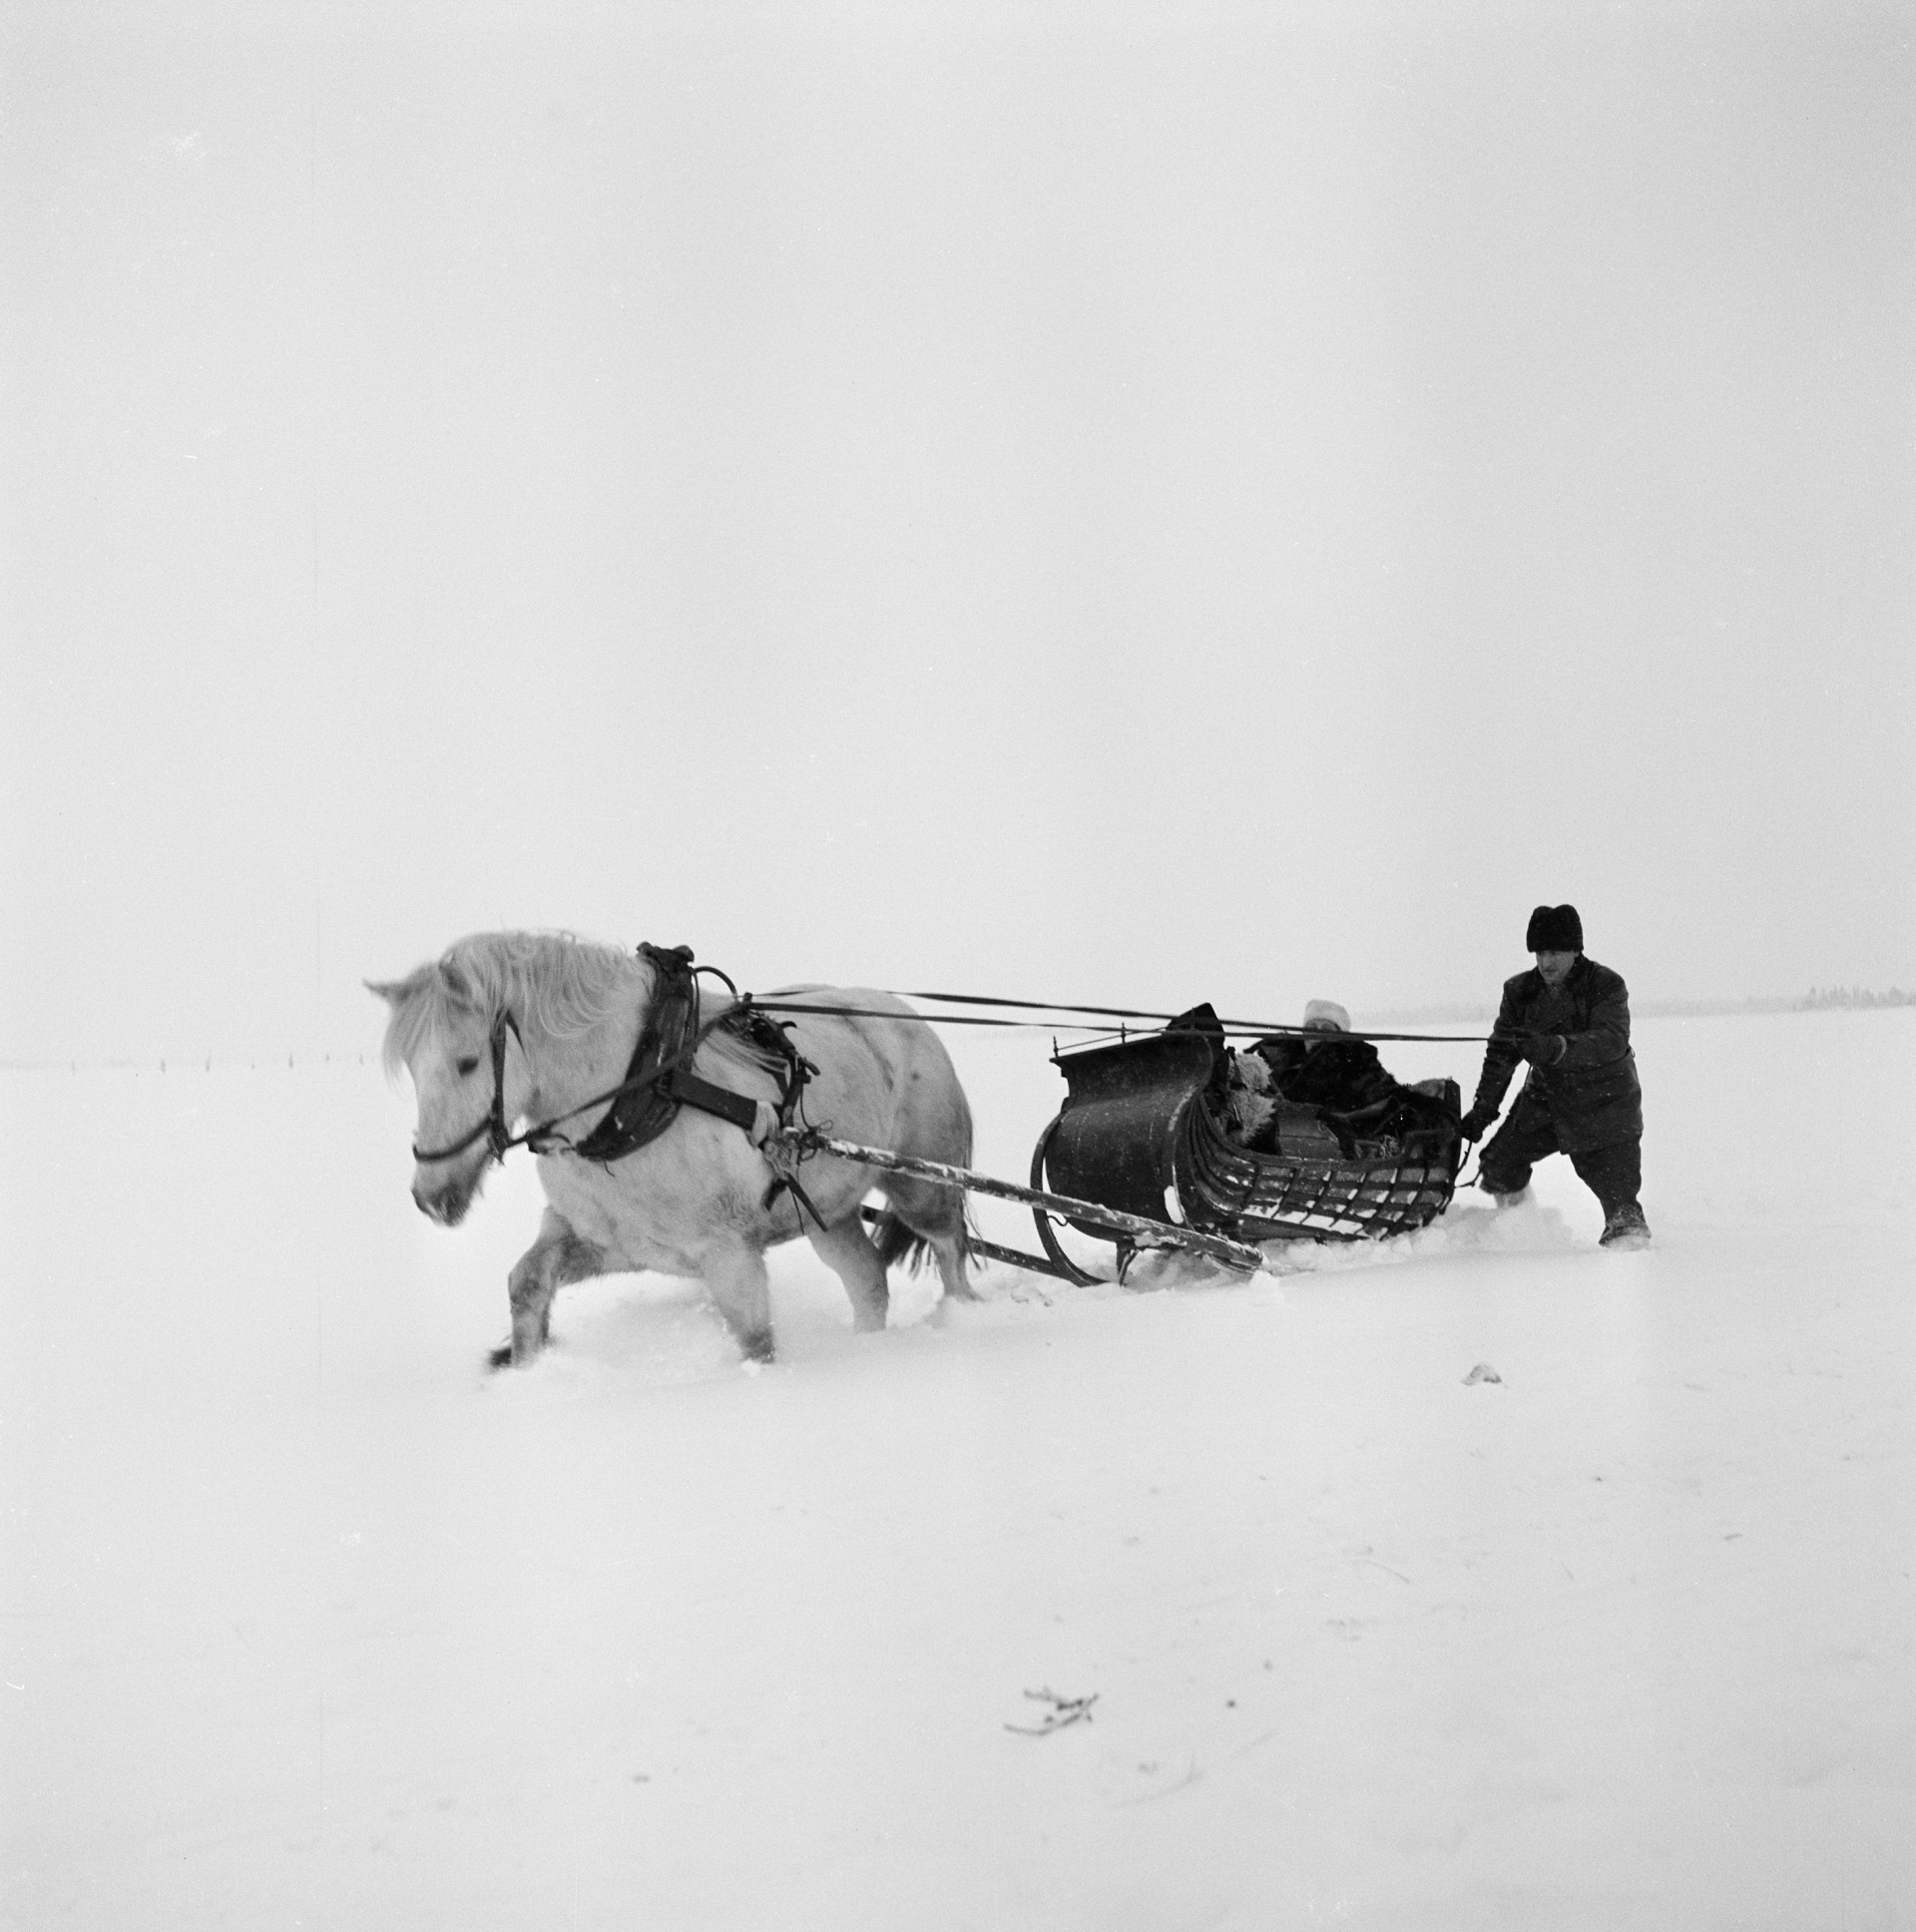 Picking up a midwife by sleigh, Arjeplog. 1950. Photo: KW Gullers/Nordiska museet